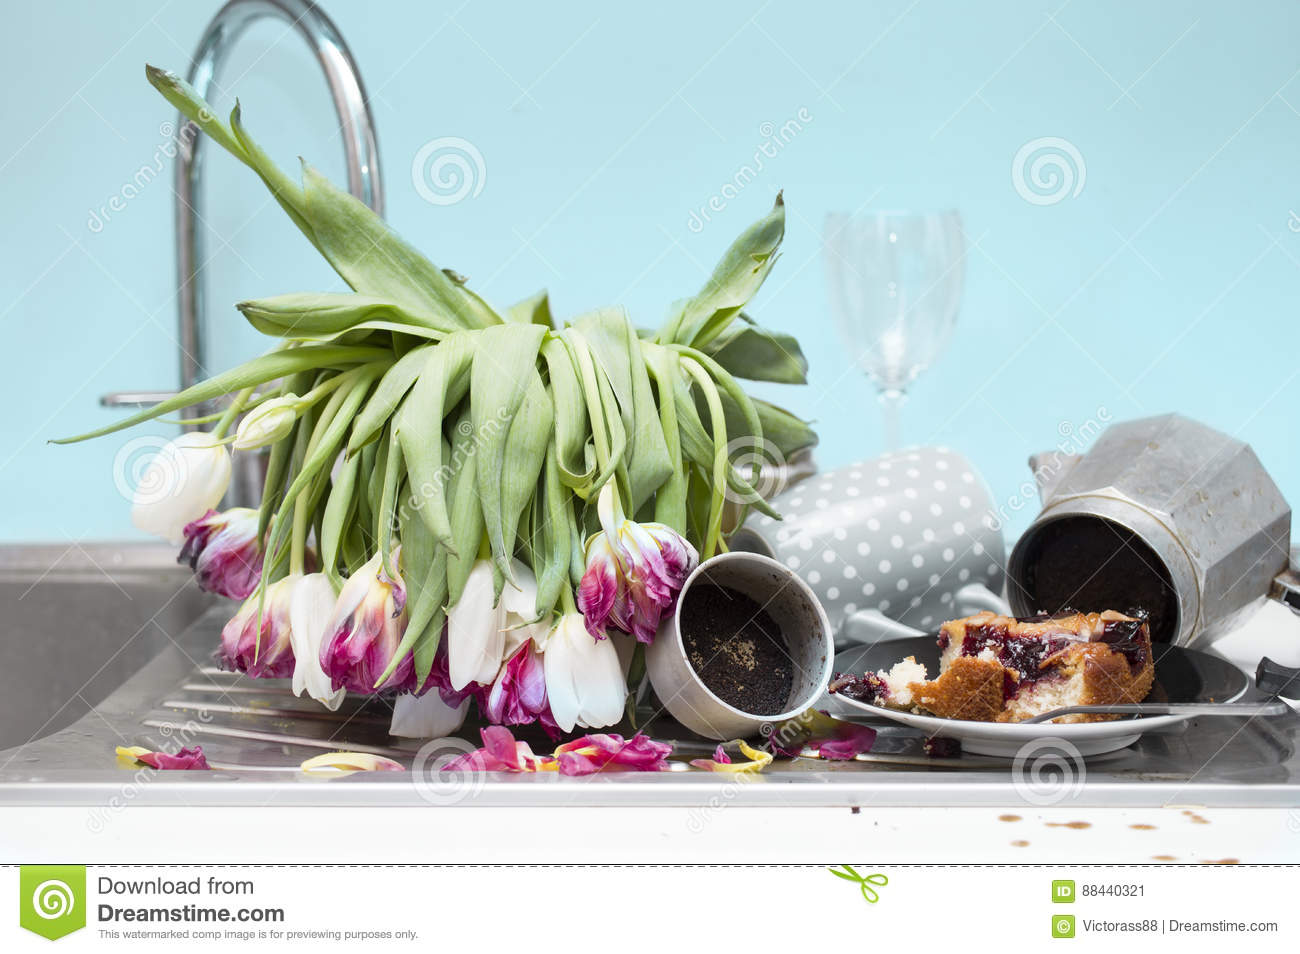 Messy Kitchen Close Up stock image. Image of interior - 88440321